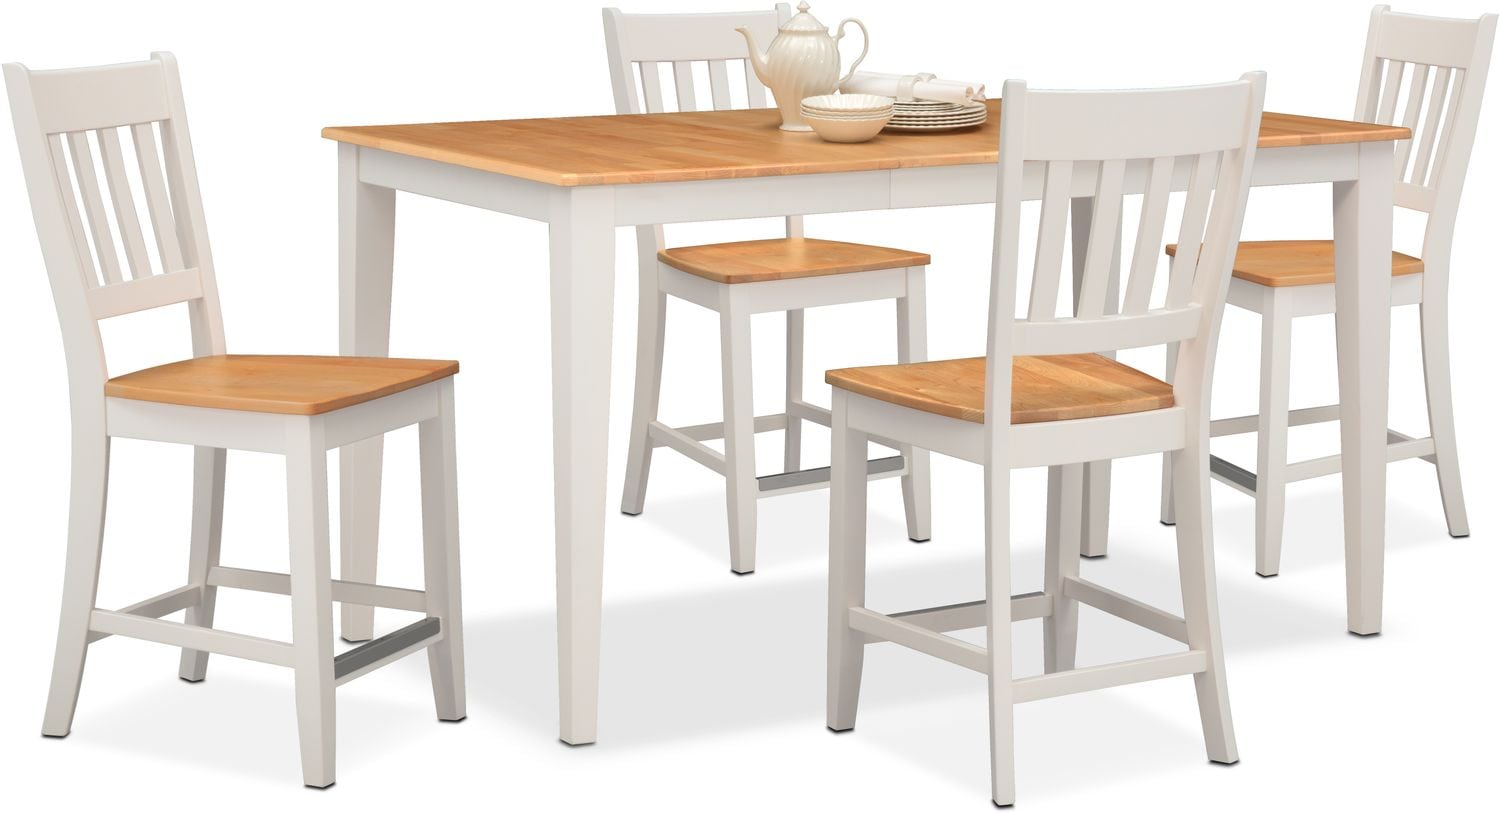 Nantucket Counter-Height Table and 4 Slat-Back Chairs - Maple and White